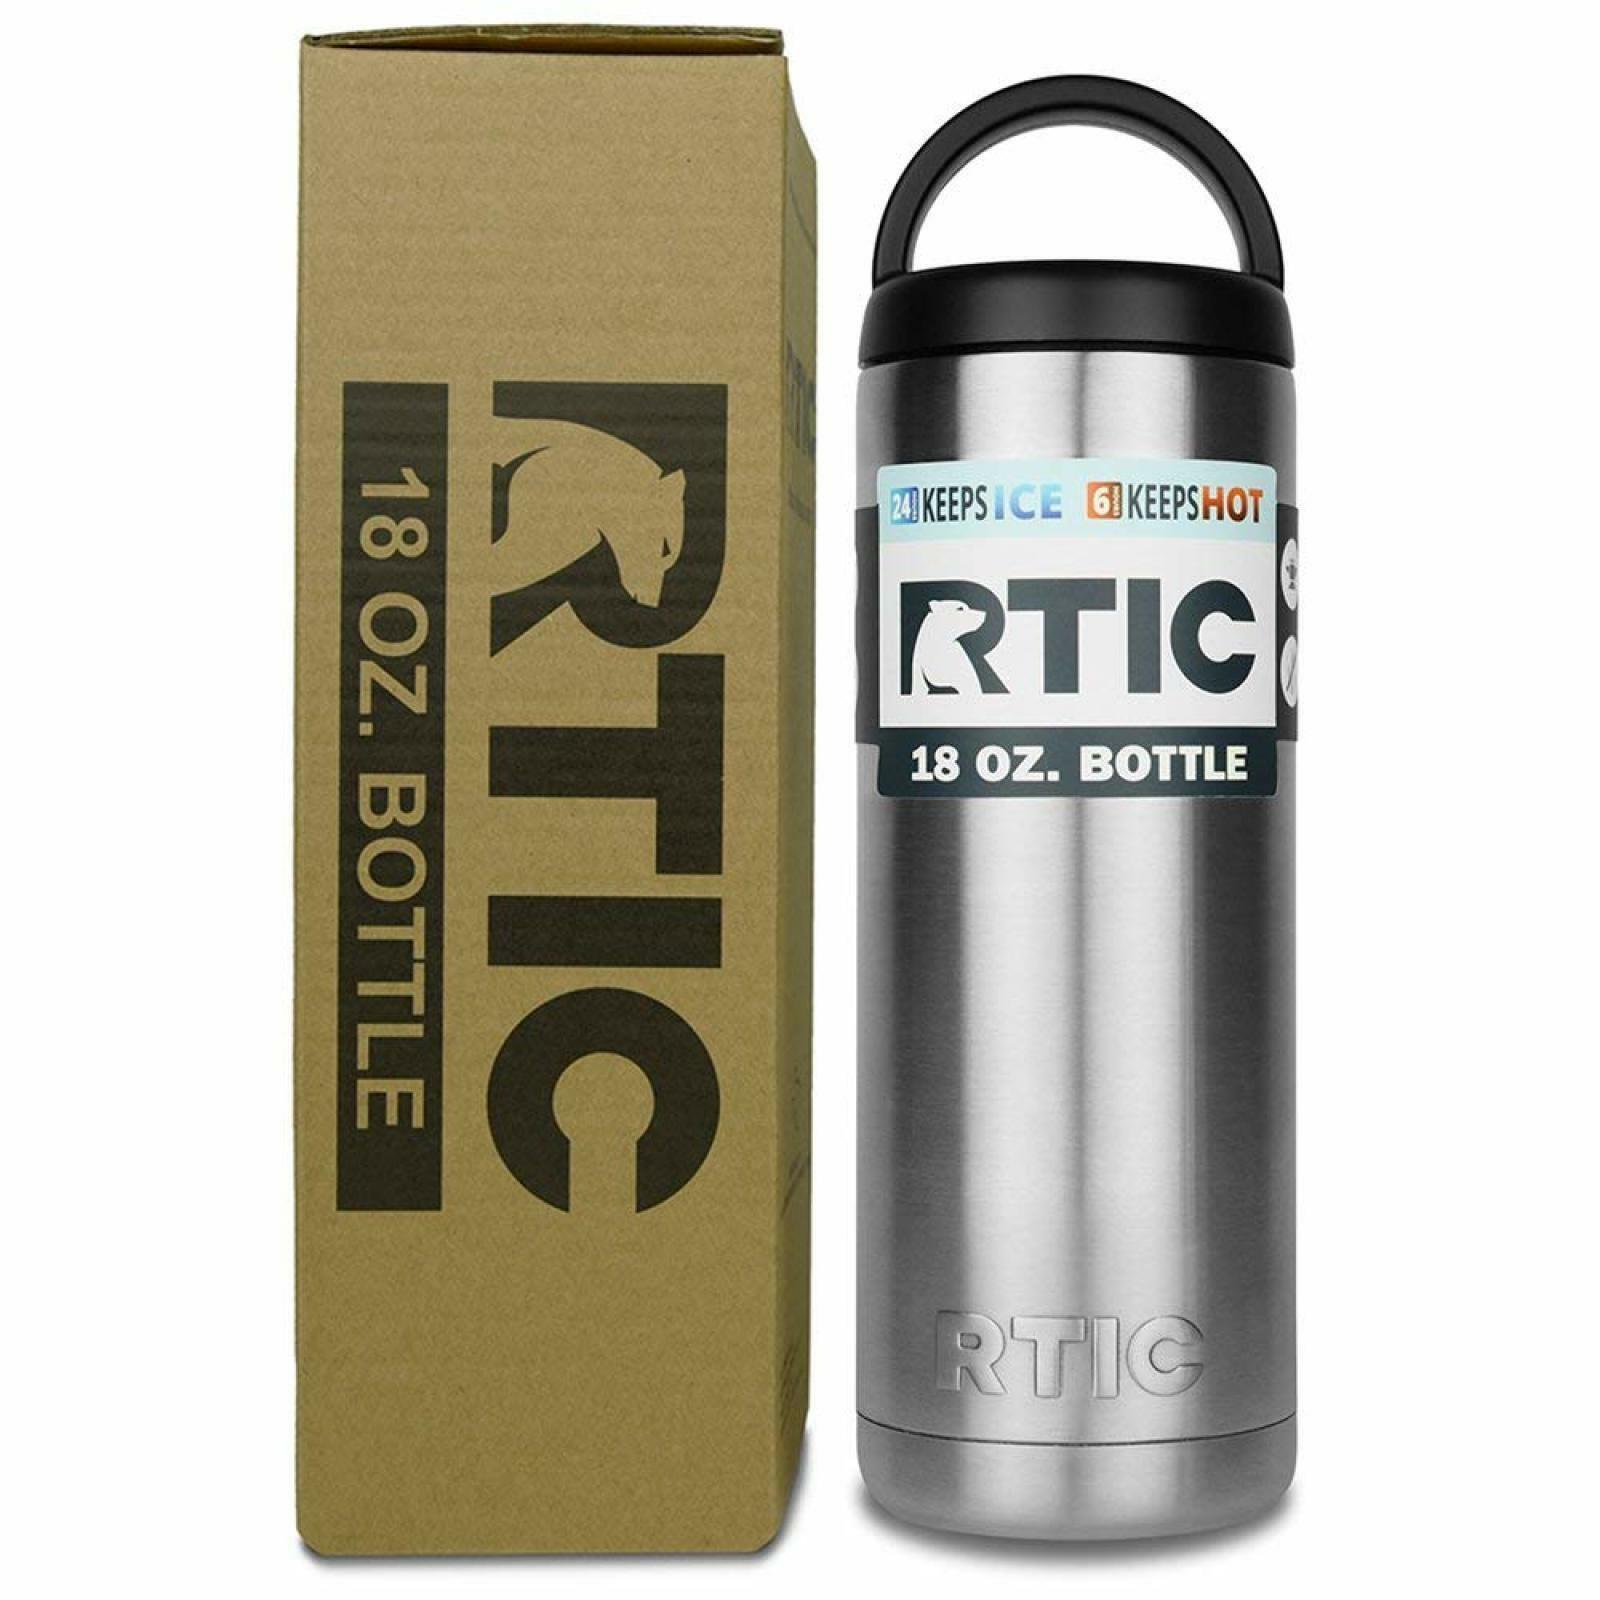 65a0e882655 Details about RTIC® 18 Oz Insulated Water Jug Bottle Stainless Steel  Rambler 2-Wall-SILVER